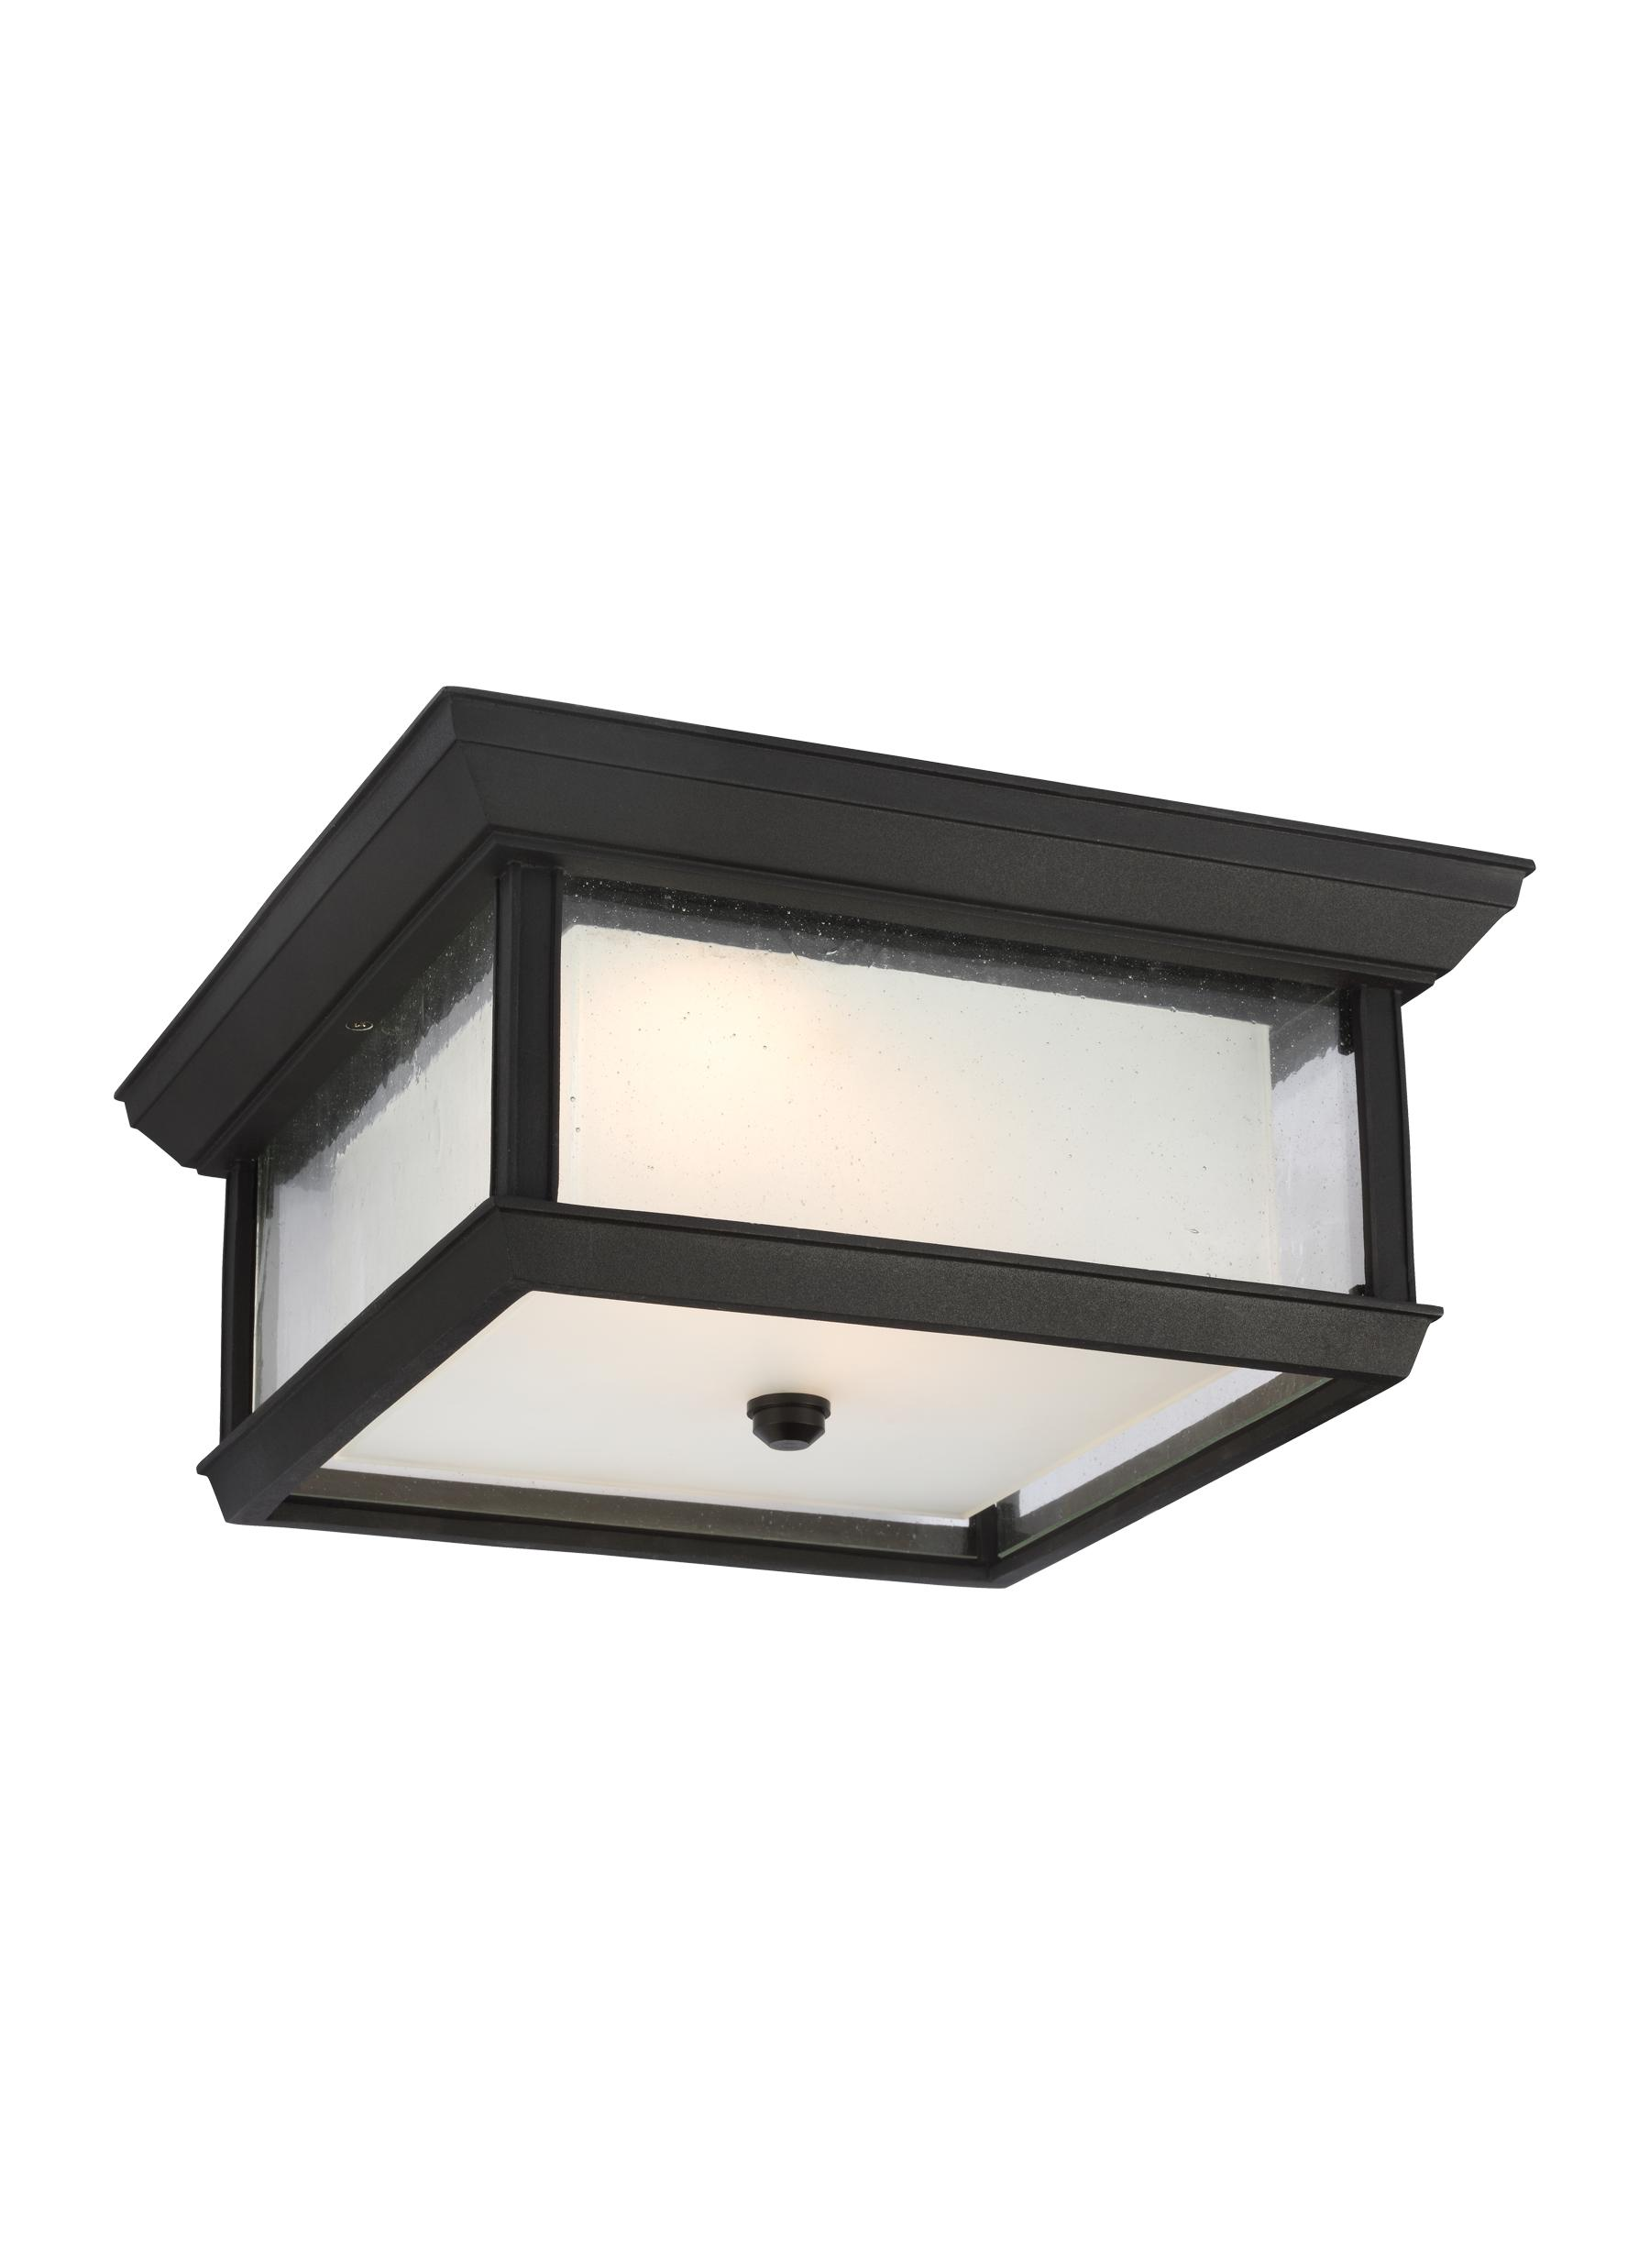 Ol12813txb led2 light outdoor led flush mounttextured black loading zoom mozeypictures Image collections